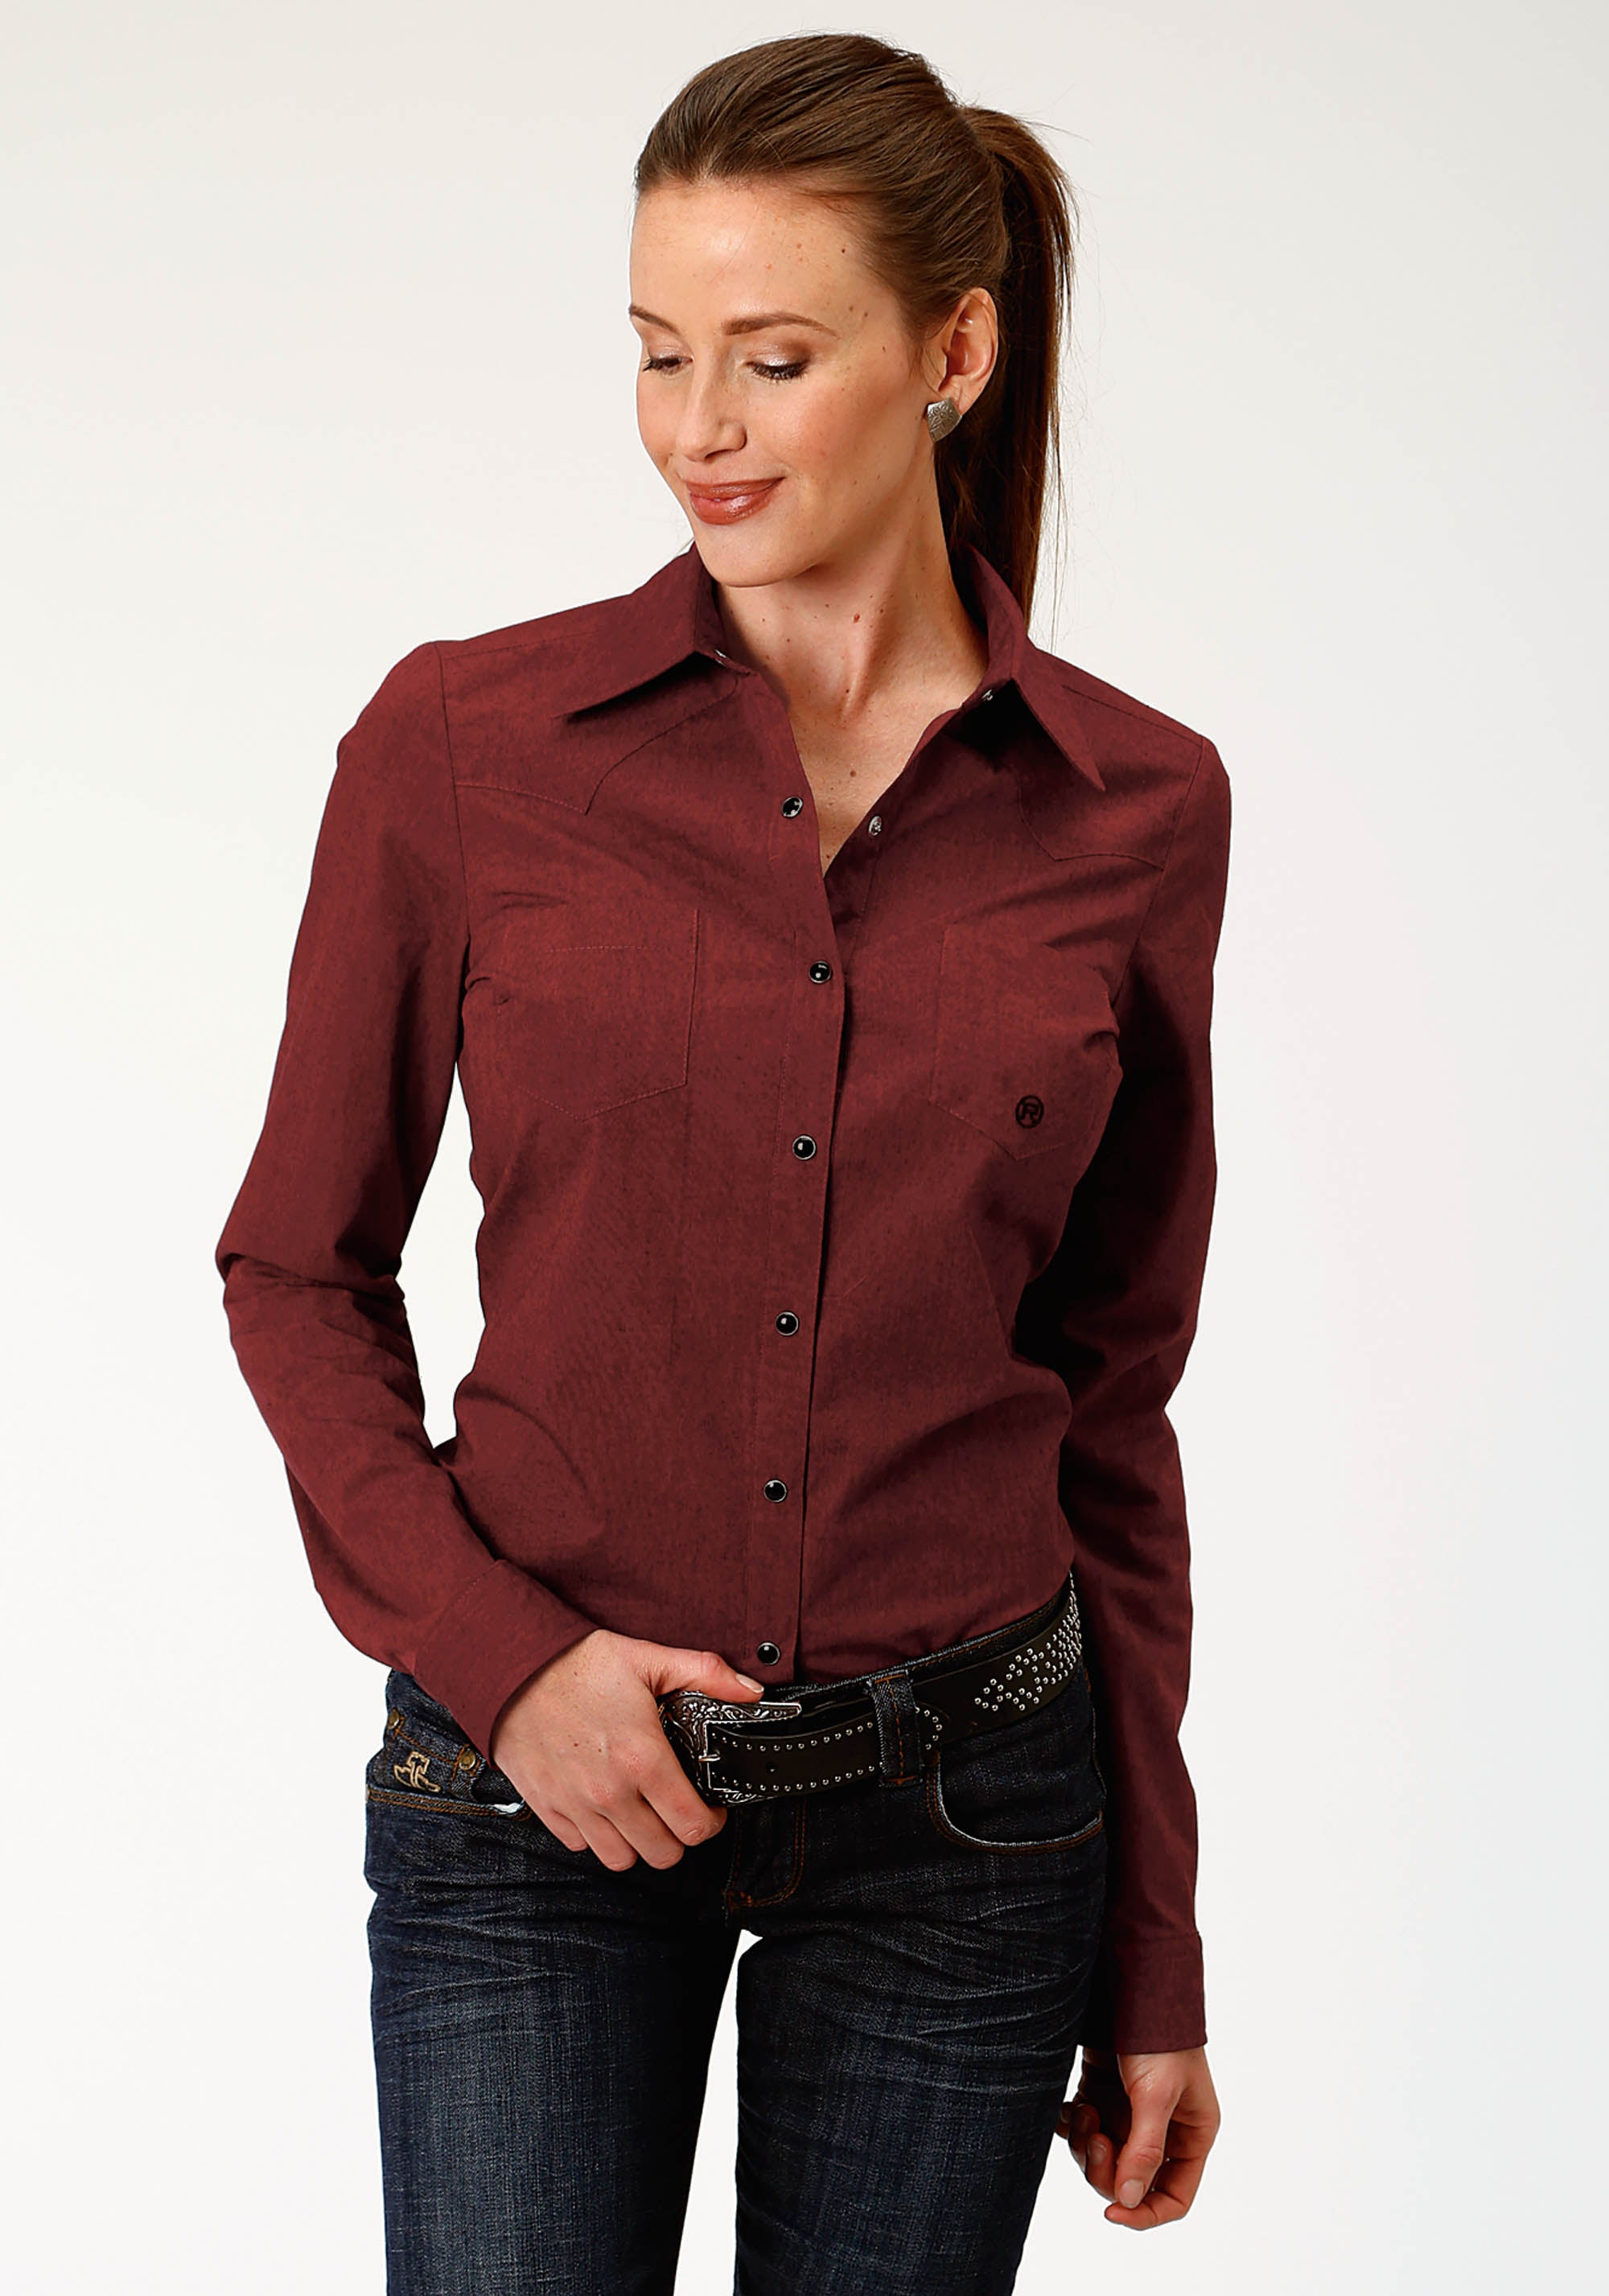 ROPER WOMENS RED 9723 RED BLACK FILL SOLID LADIES AMARILLO COLLECTION- AUTUMN SUNSET LONG SLEEVE